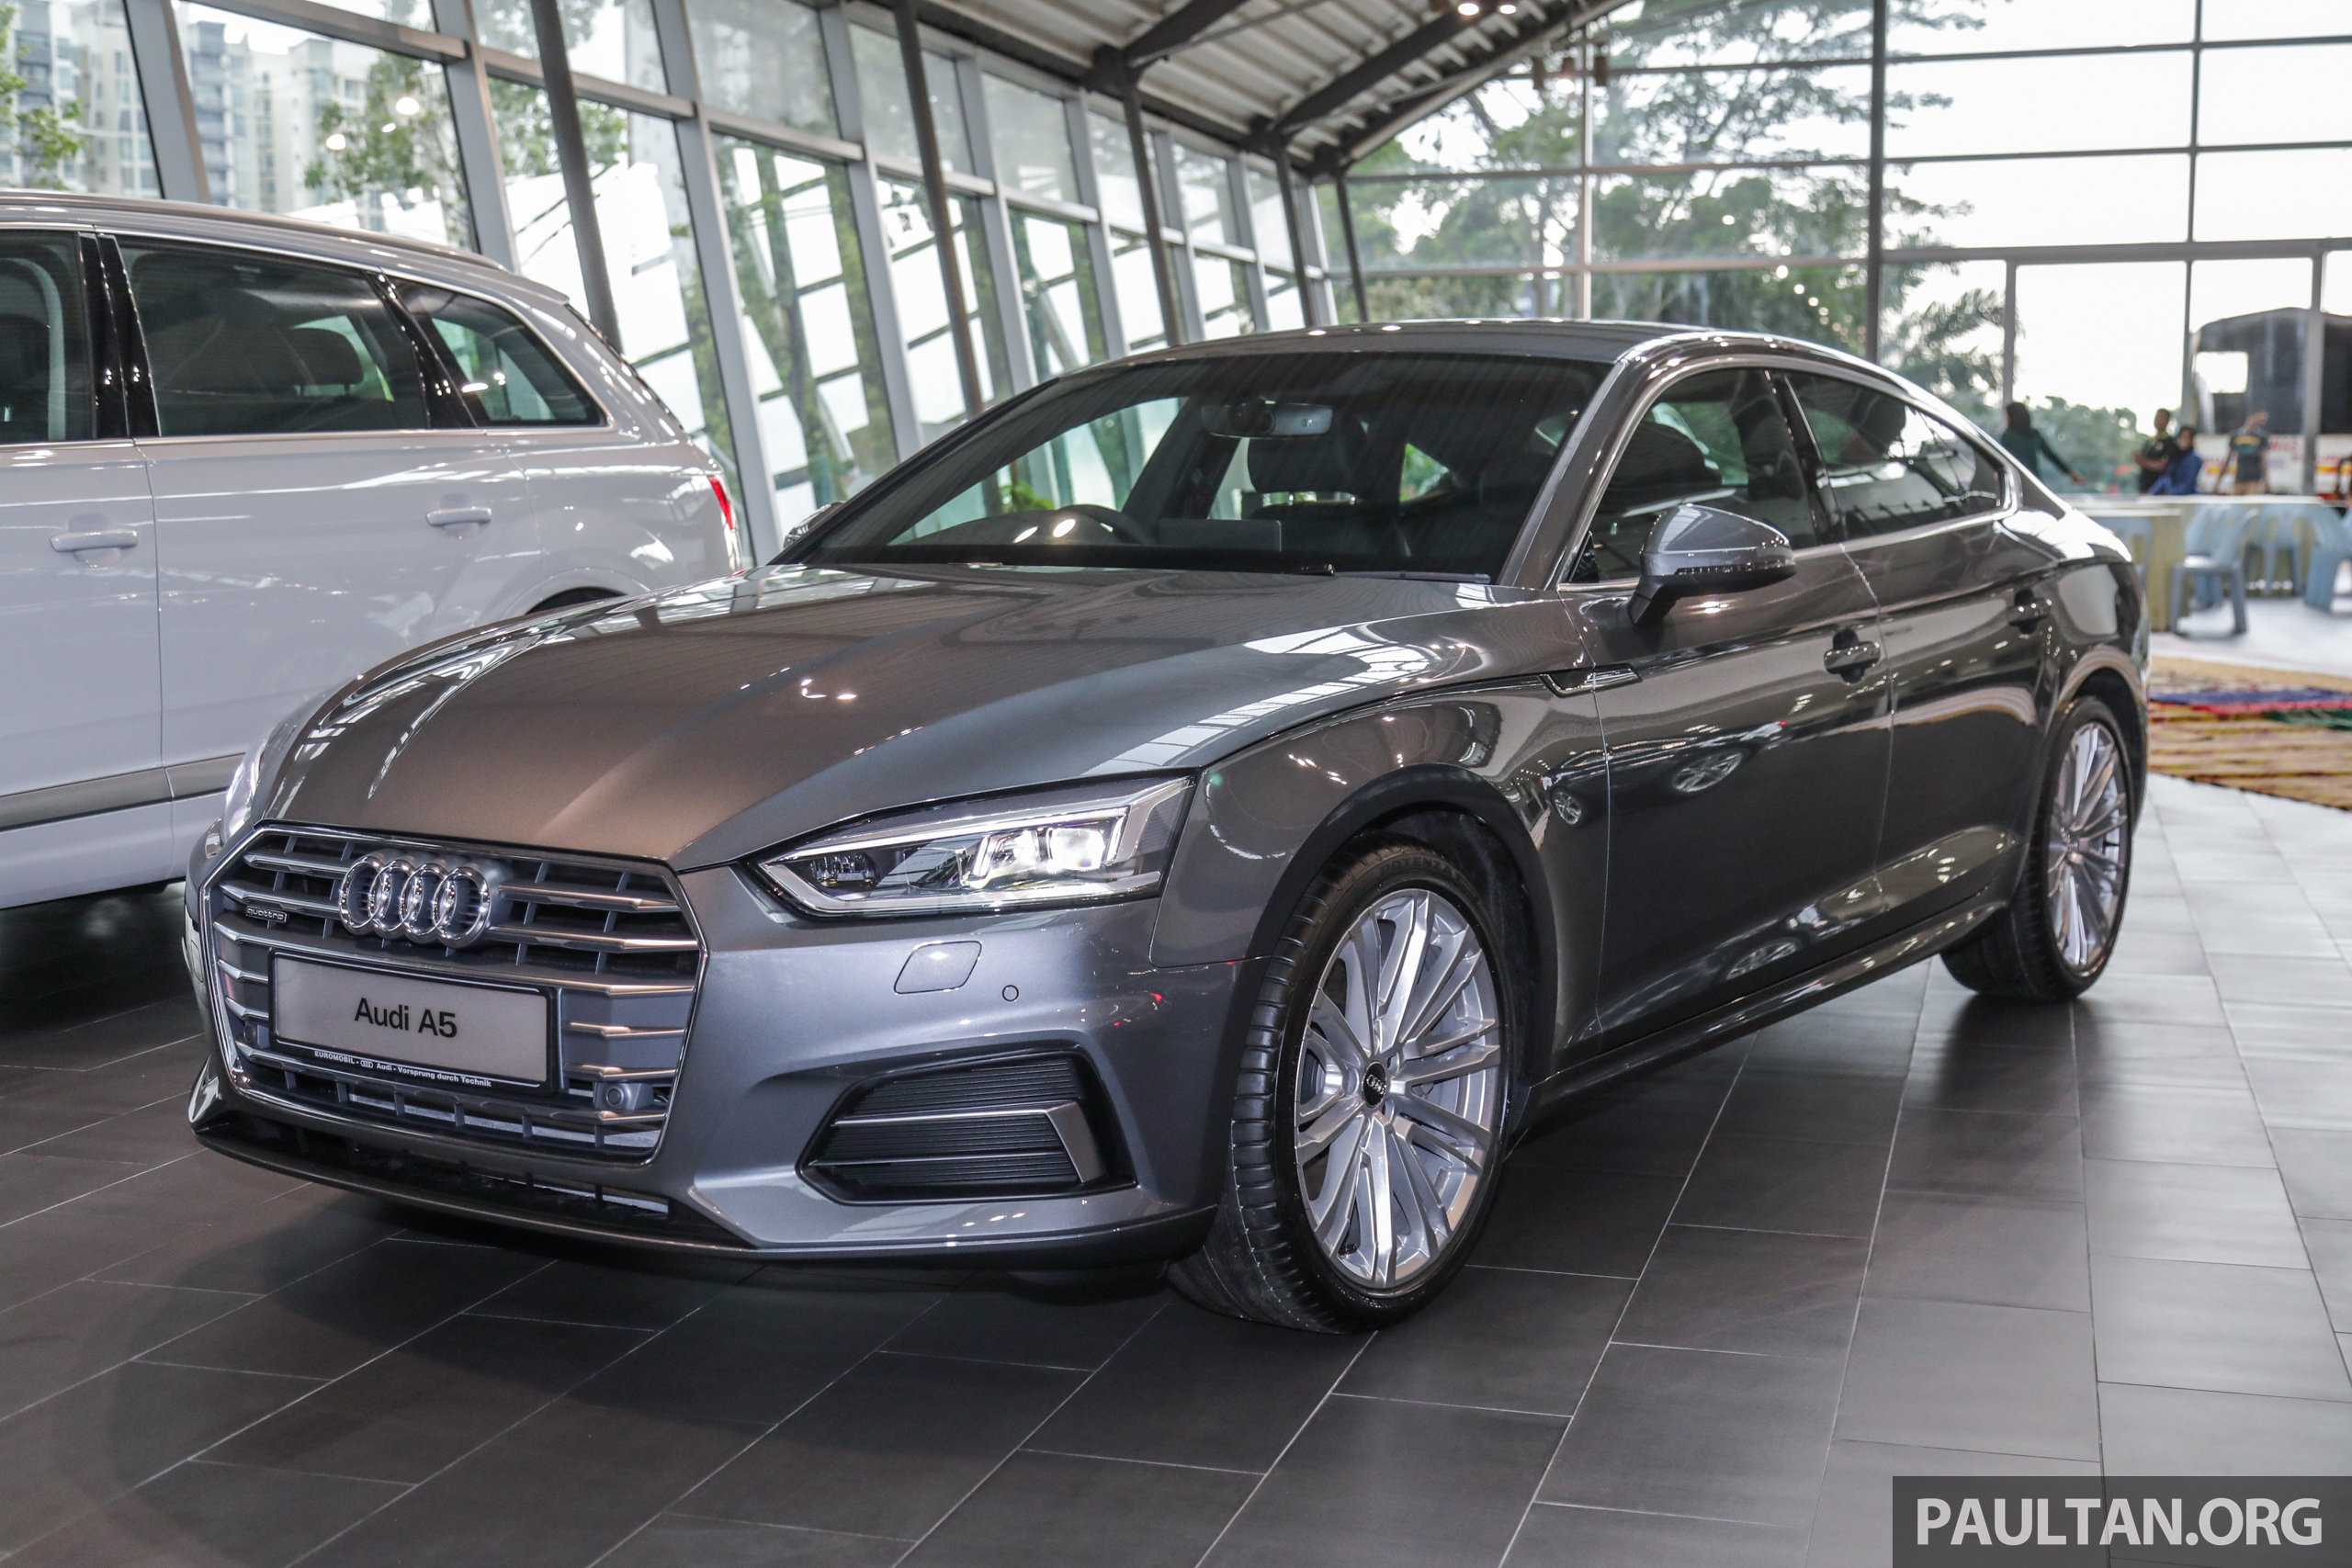 F5 Audi A5 Sportback Sport 2 0 Tfsi Quattro Previewed In Malaysia 252 Hp 370 Nm Priced At Rm339 900 Paultan Org